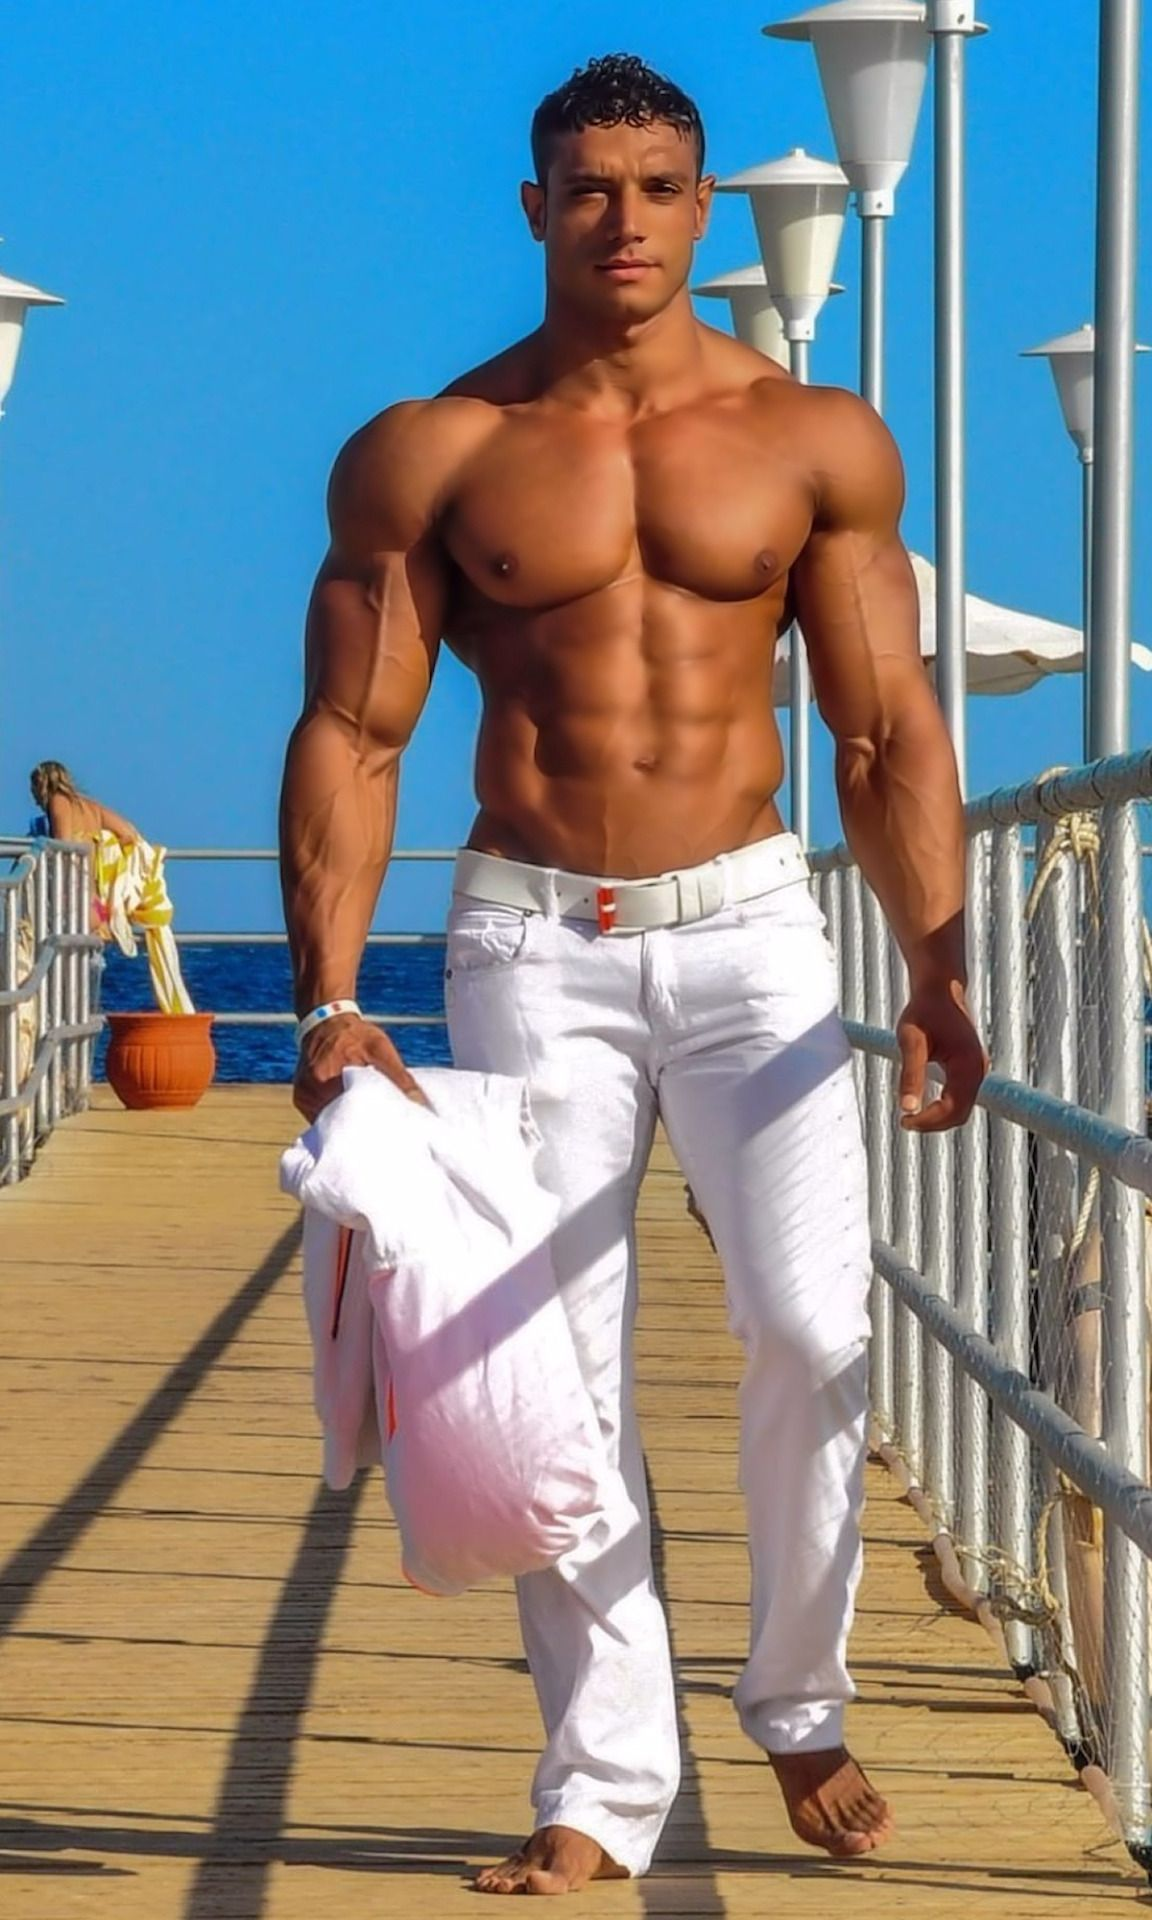 Sexy latino men with muscles